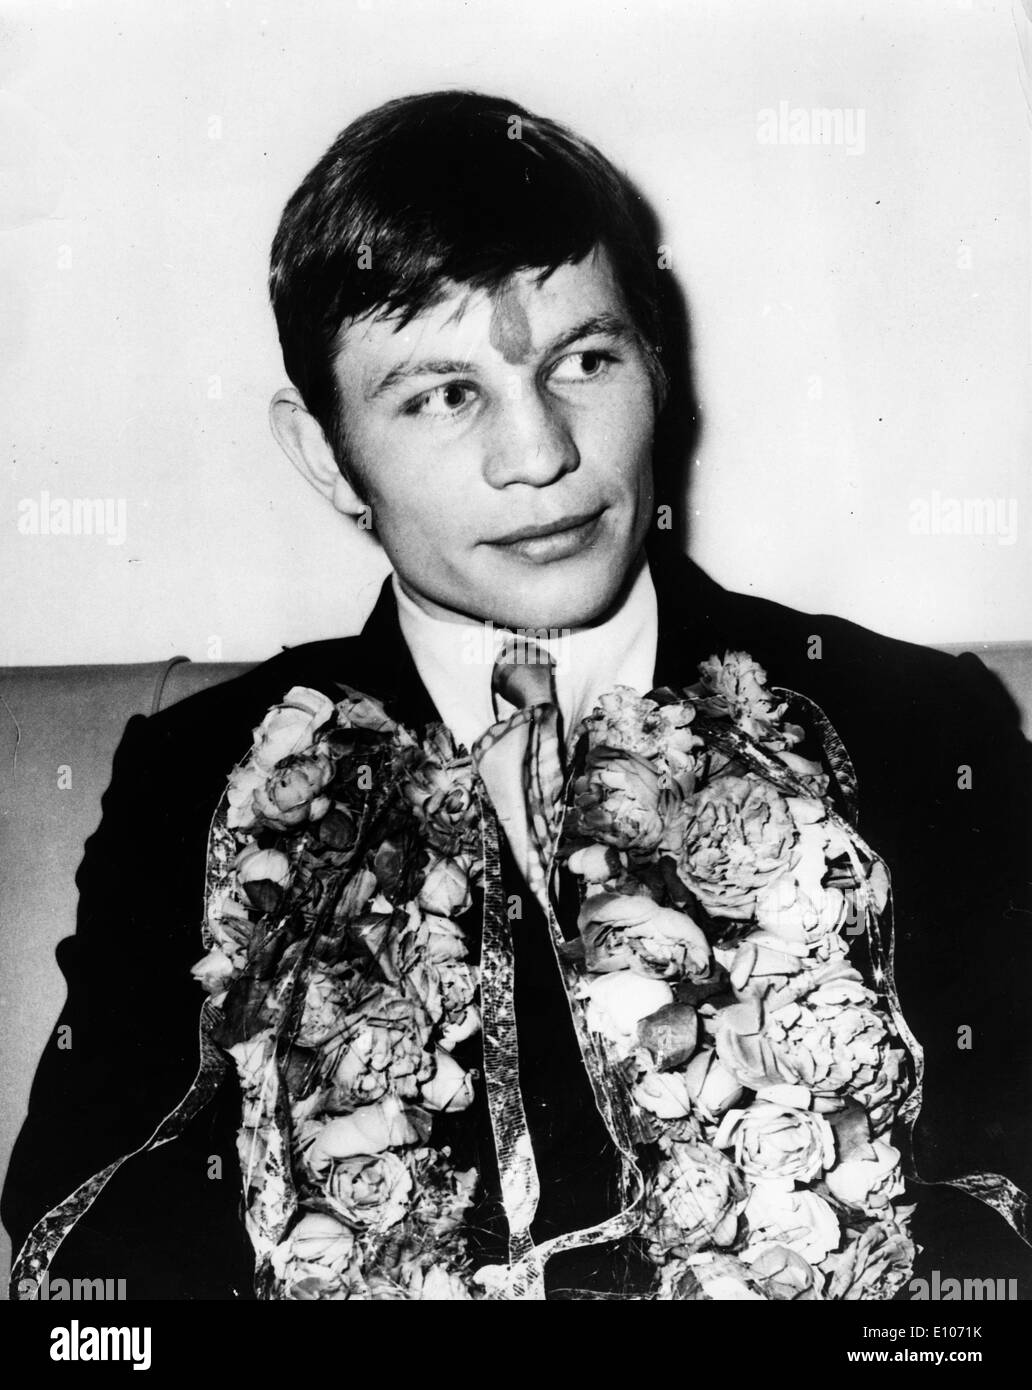 picture Michael York (born 1942)